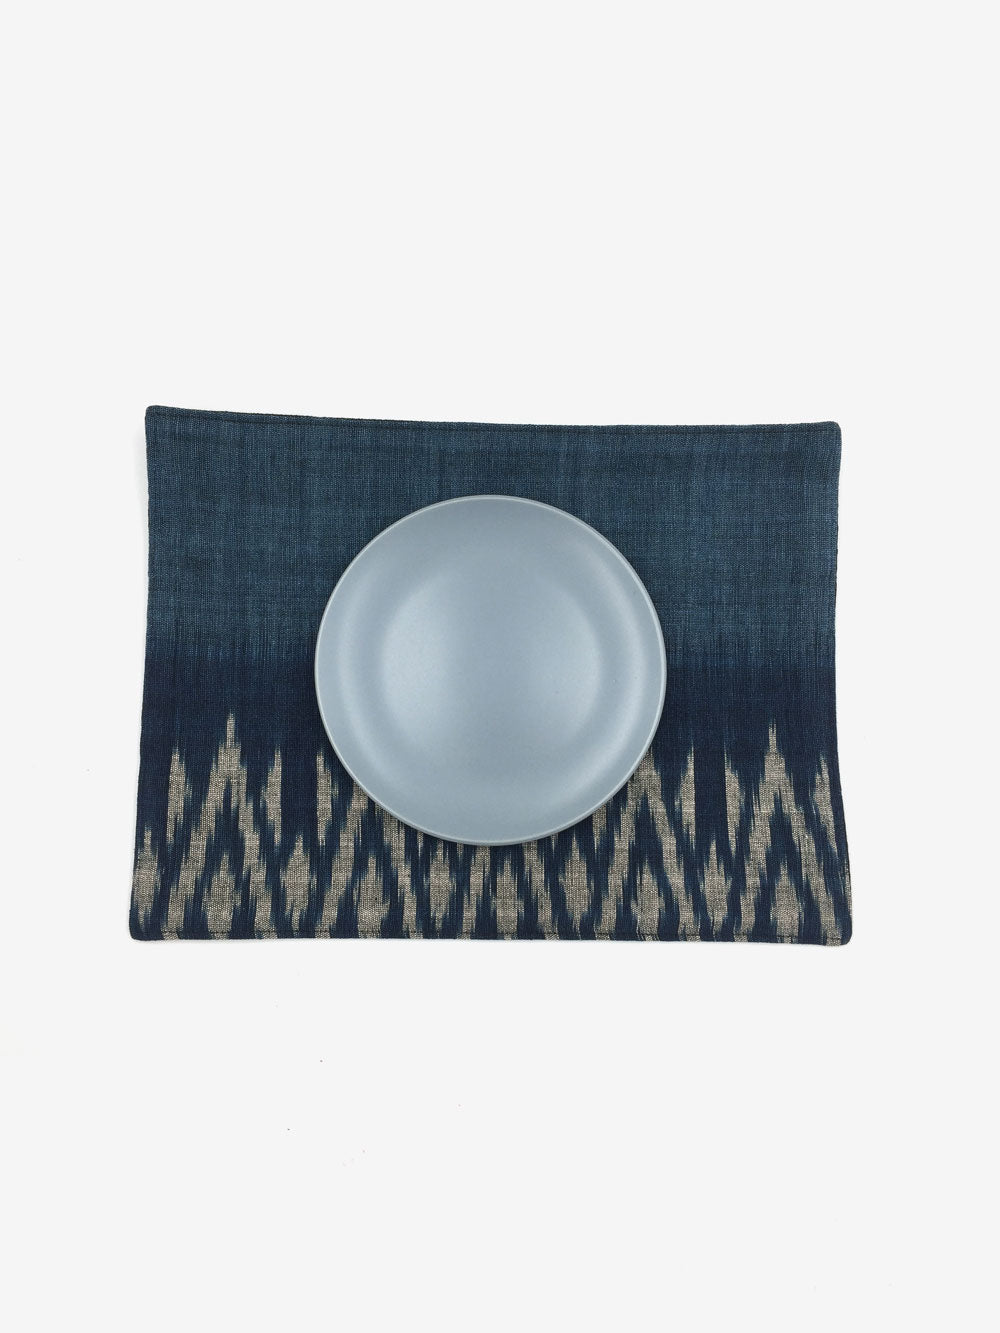 Handwoven Indigo Placemat (Set of 4)